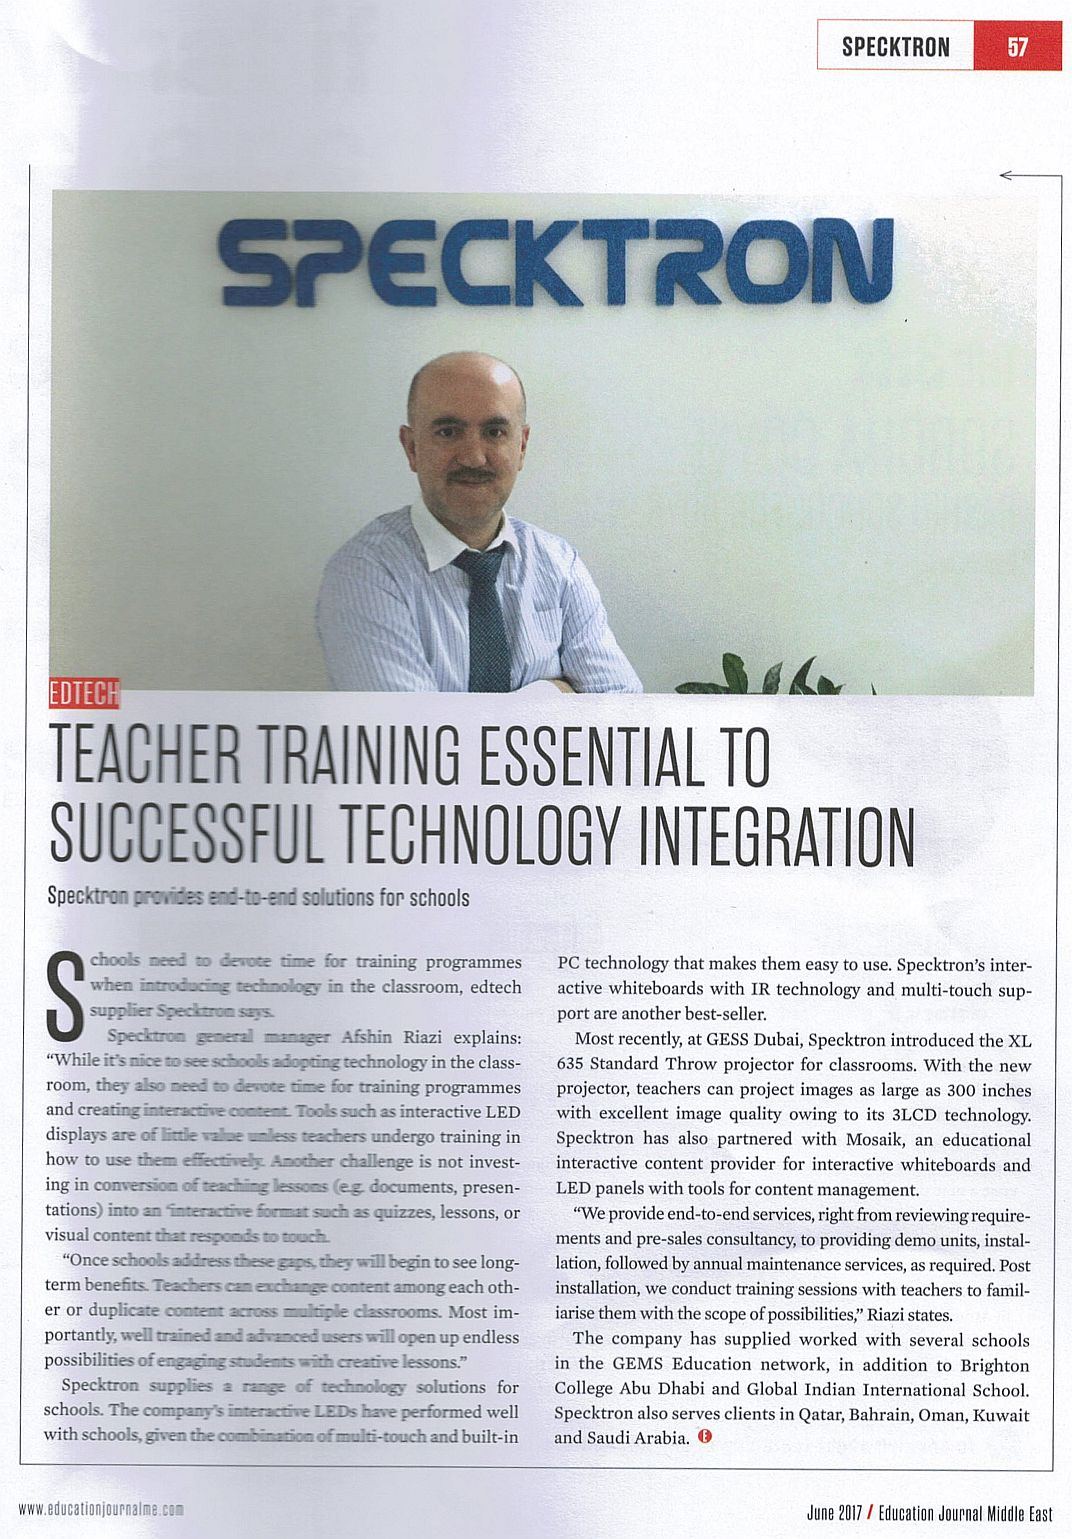 Interview with Education Journal (ITP)